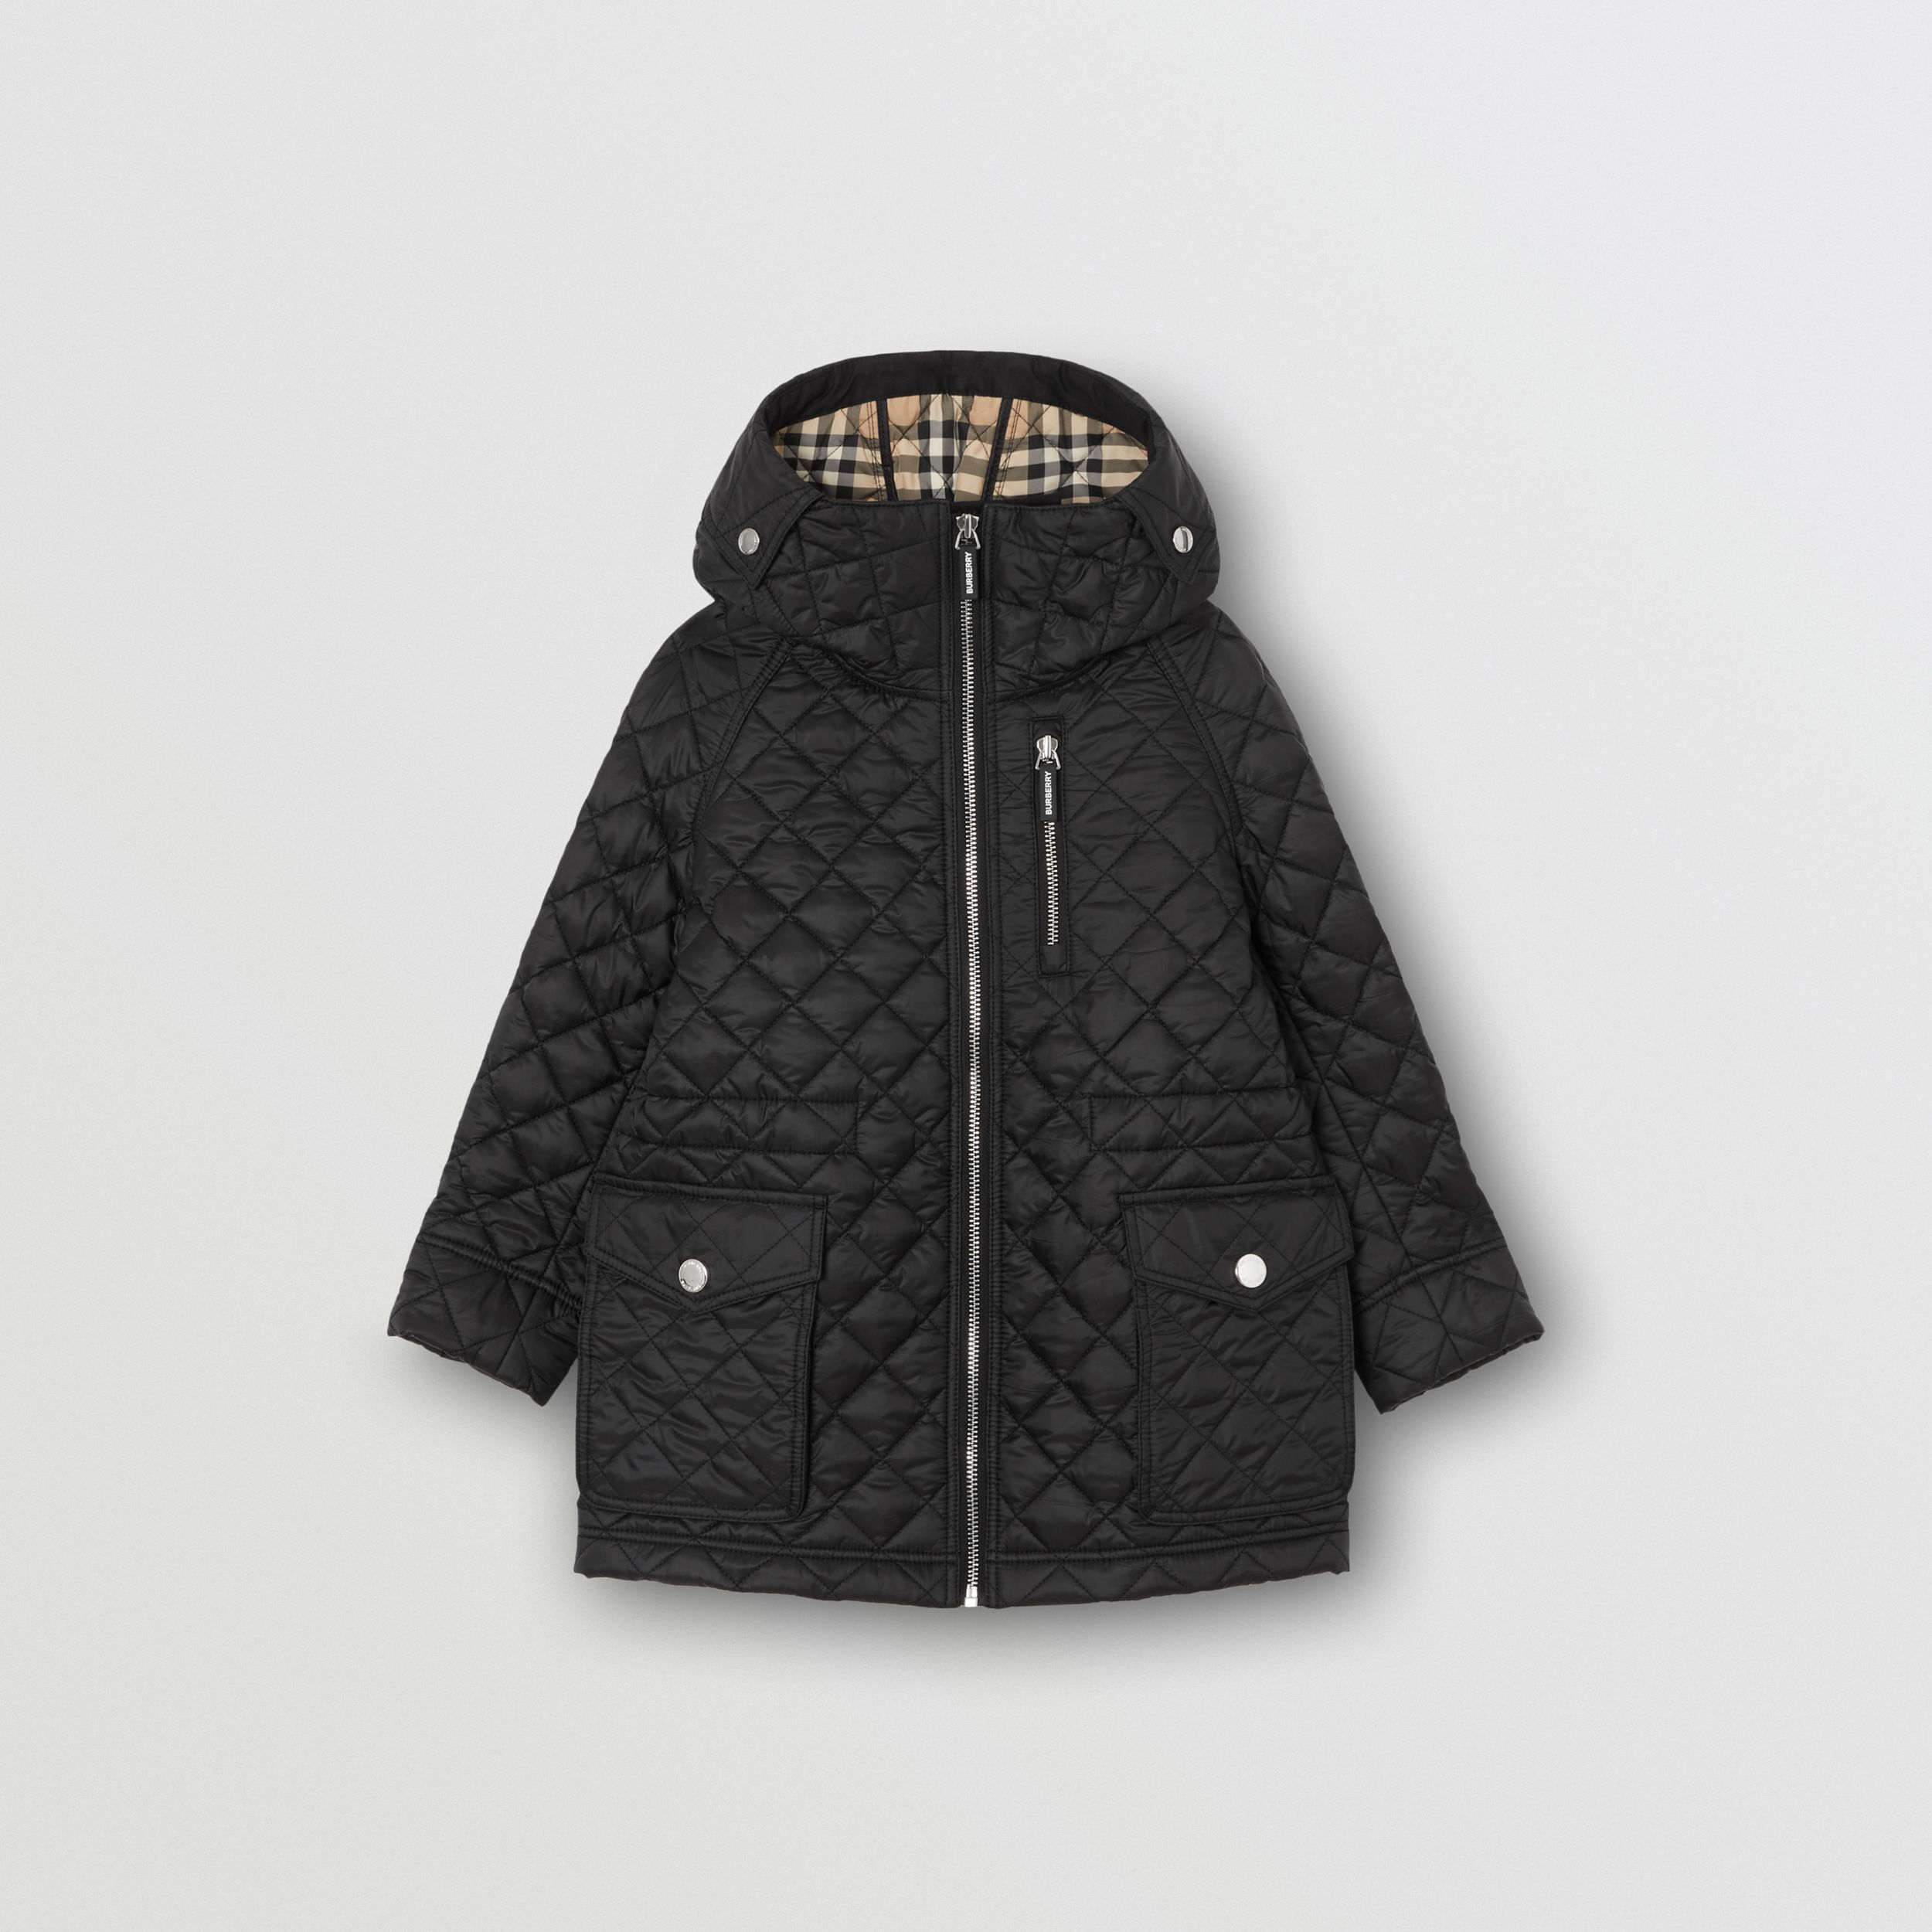 Diamond Quilted Hooded Coat in Black | Burberry - 1